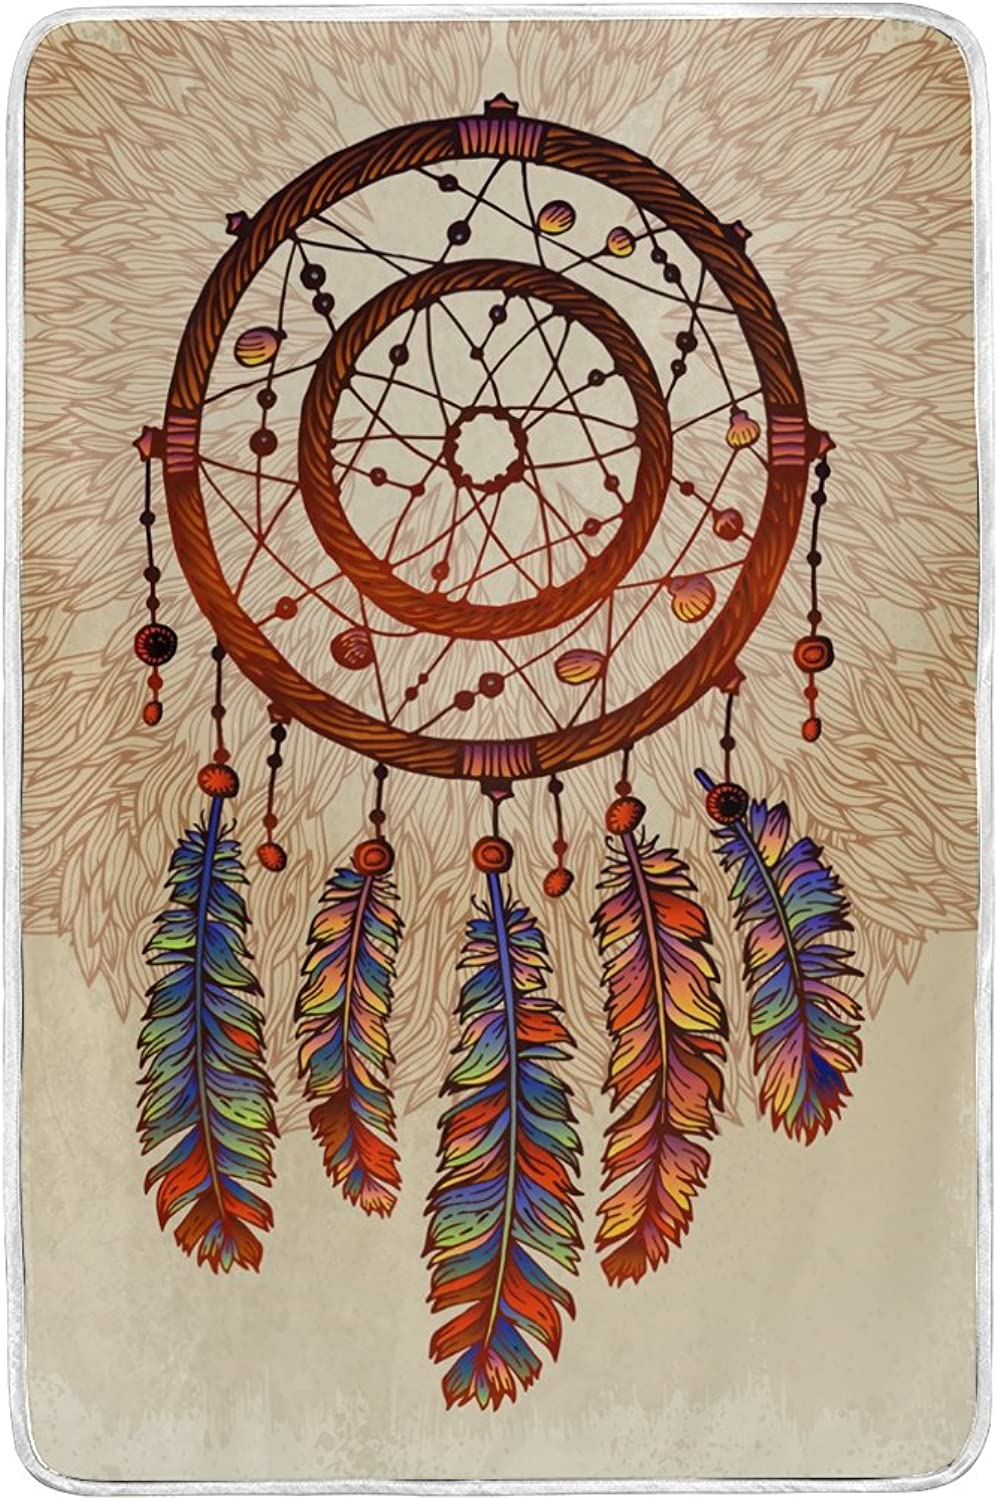 ALAZA Dreamcatcher with Feathers Gemstones Blankets Lightweight Blanket for Adults Men Women Girls Kids Girls Boys Teens Extra Soft Polyester Fabric Super Warm Sofa Blanket Throw Size 60 x 90 inch